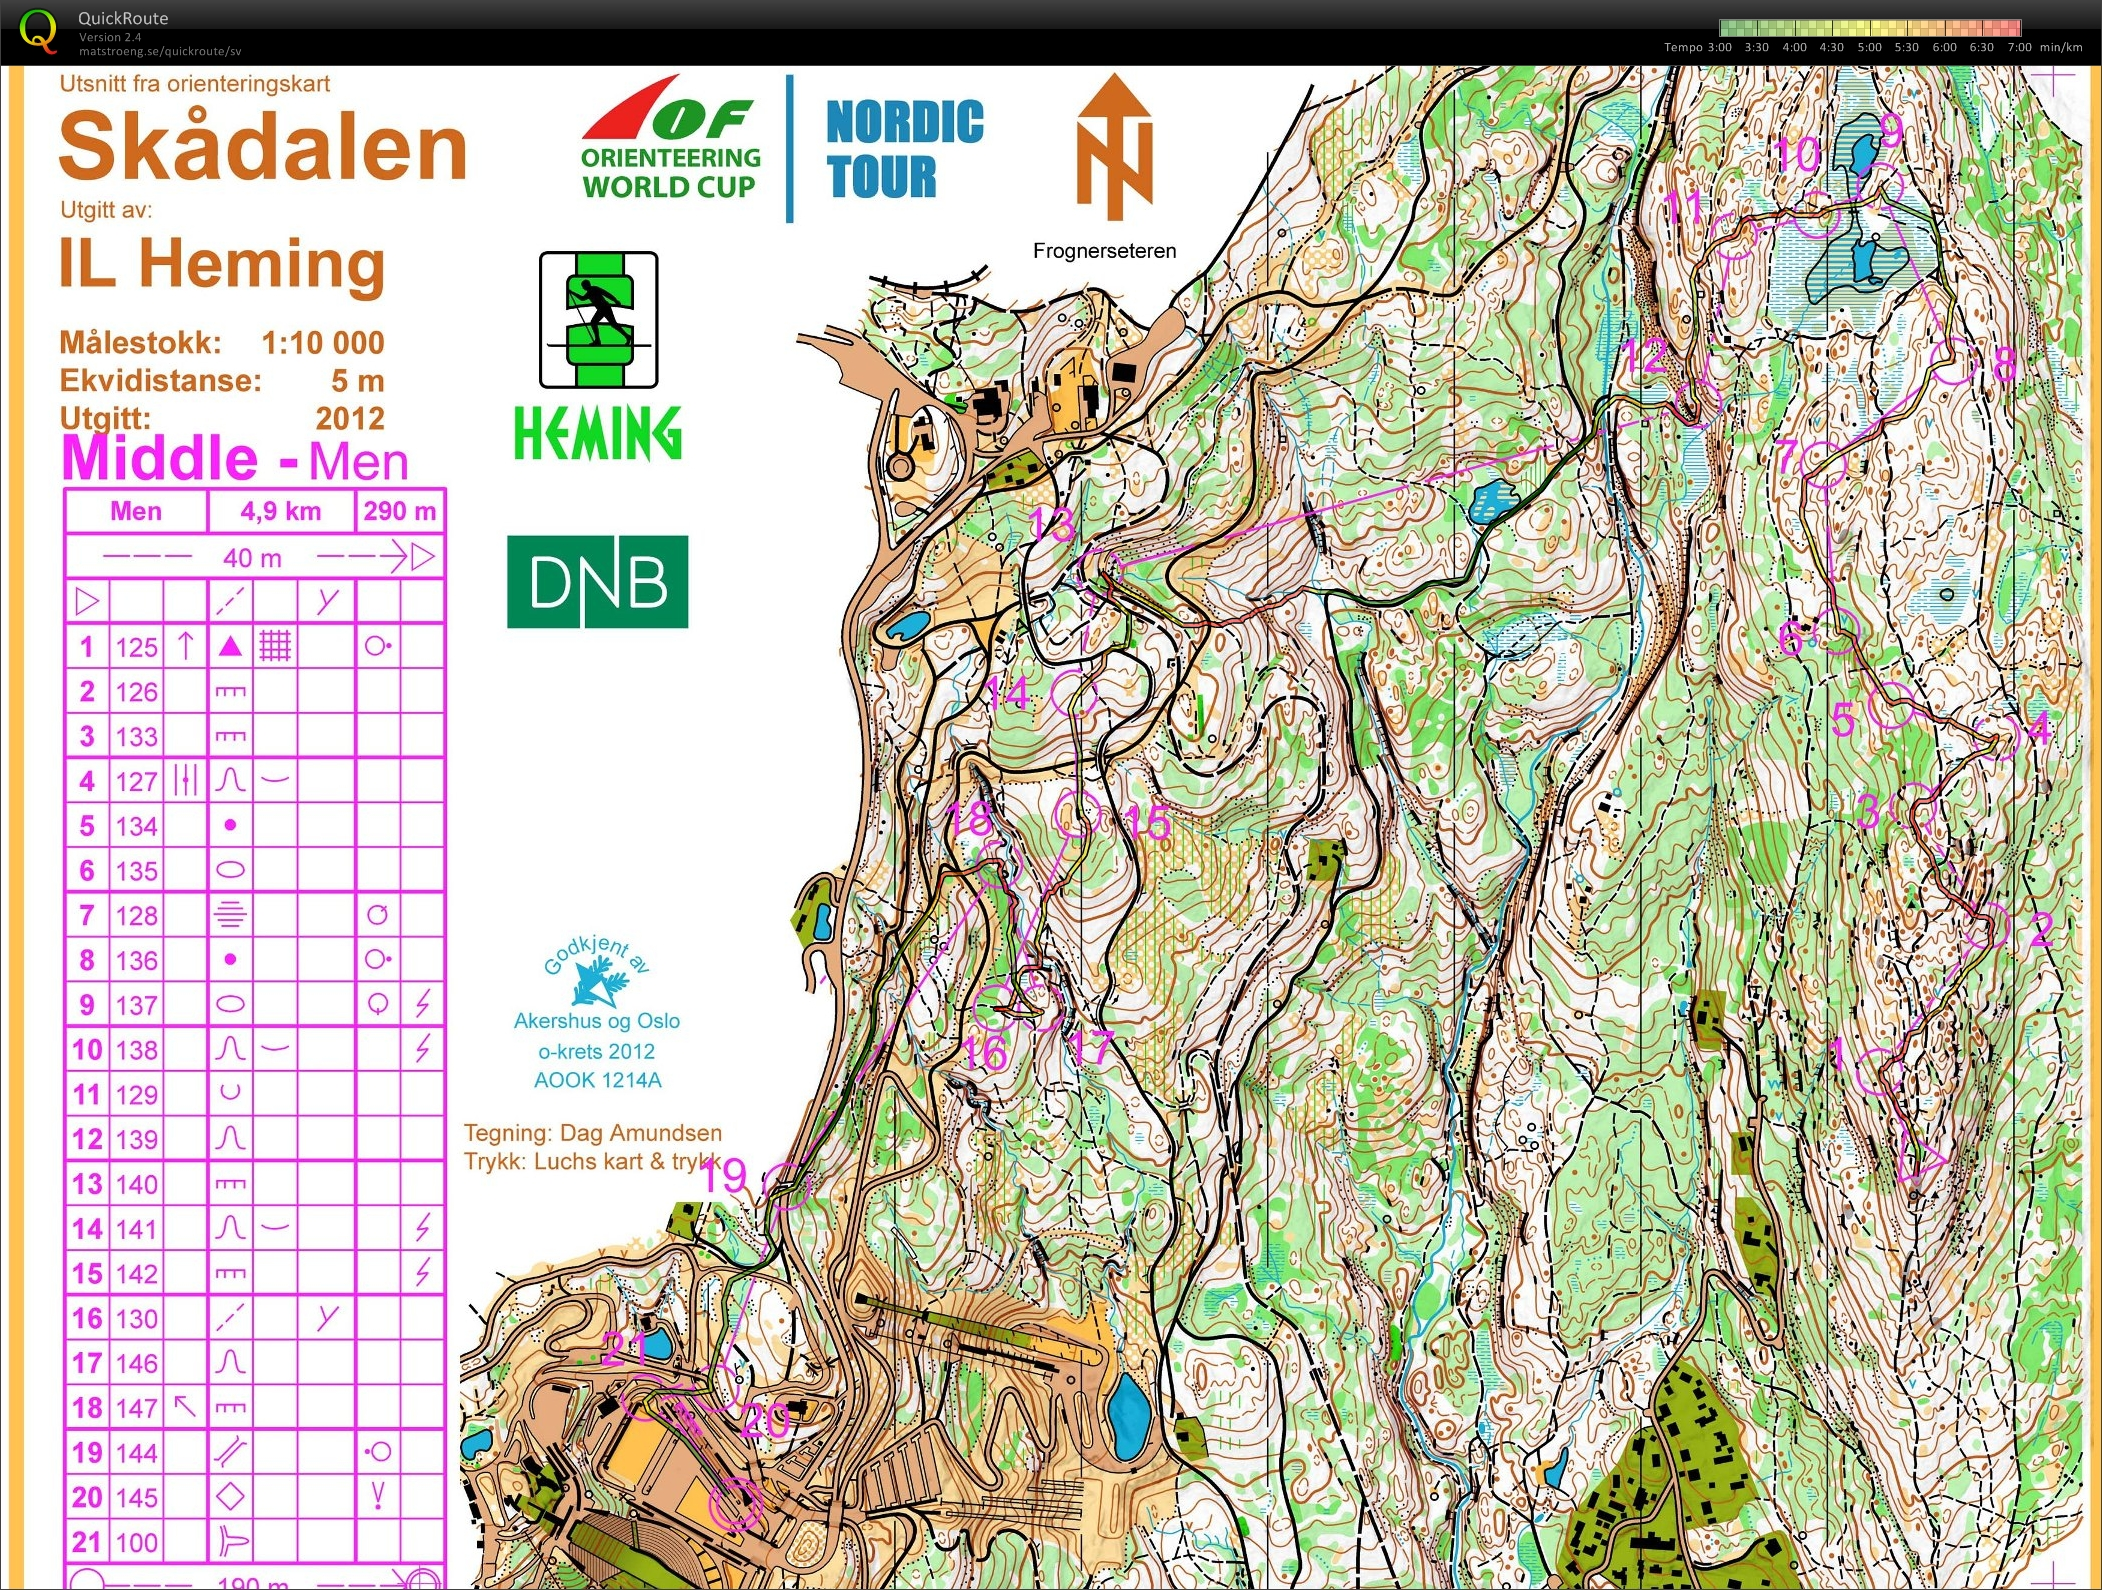 Nordic Orienteering Tour, stage 2, World Cup (2012-09-02)